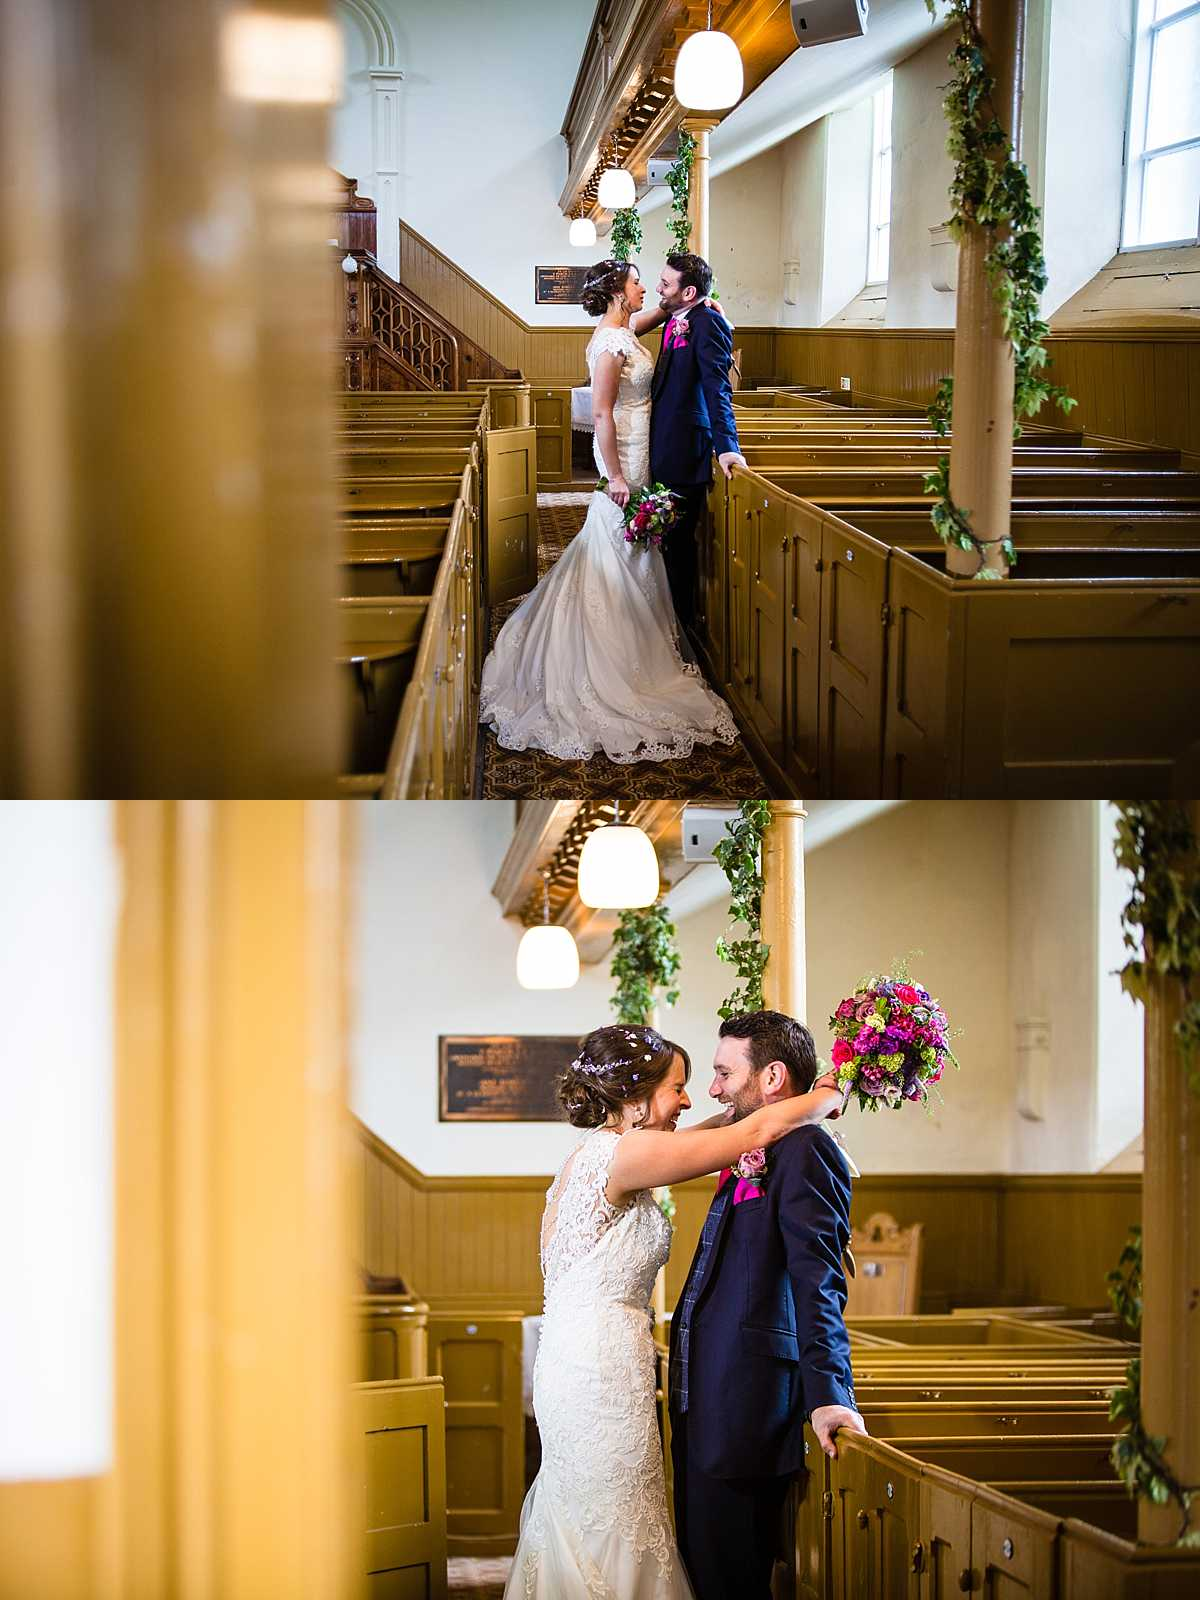 bride and groom back in an empty church and laughing amongst themselves at something hilarious